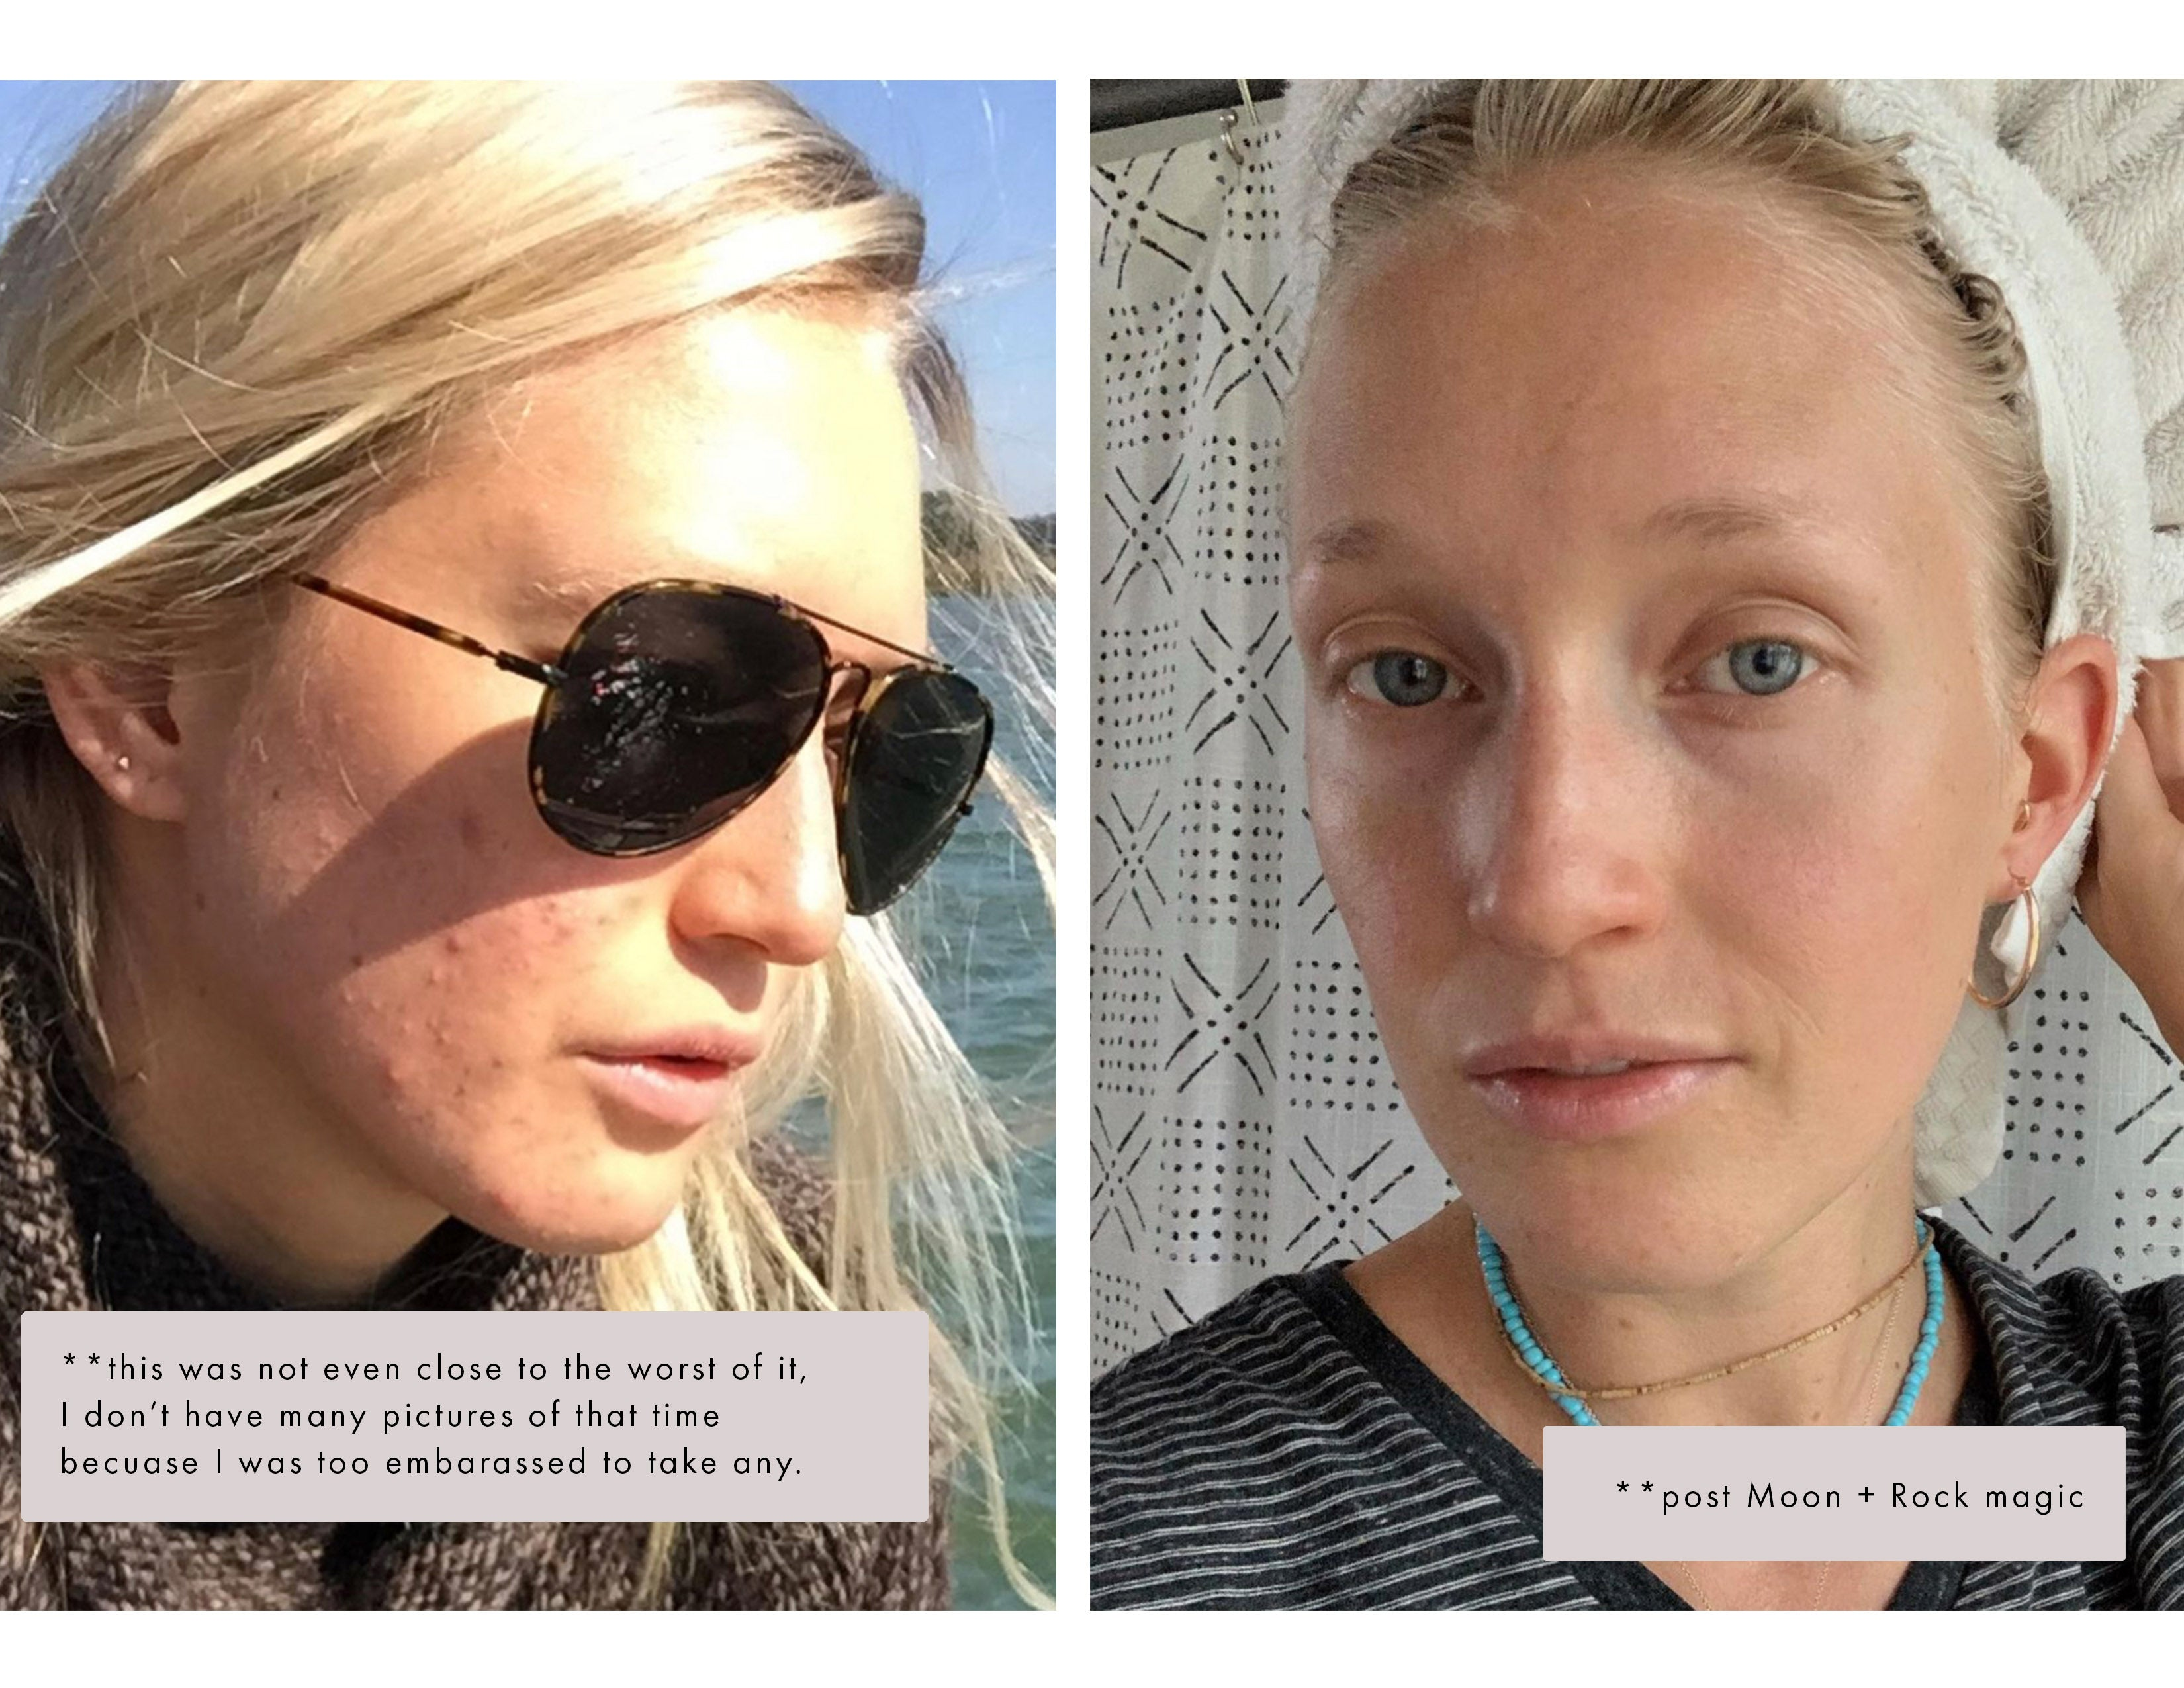 moon + rock acne testimonial before and after healing organic skincare